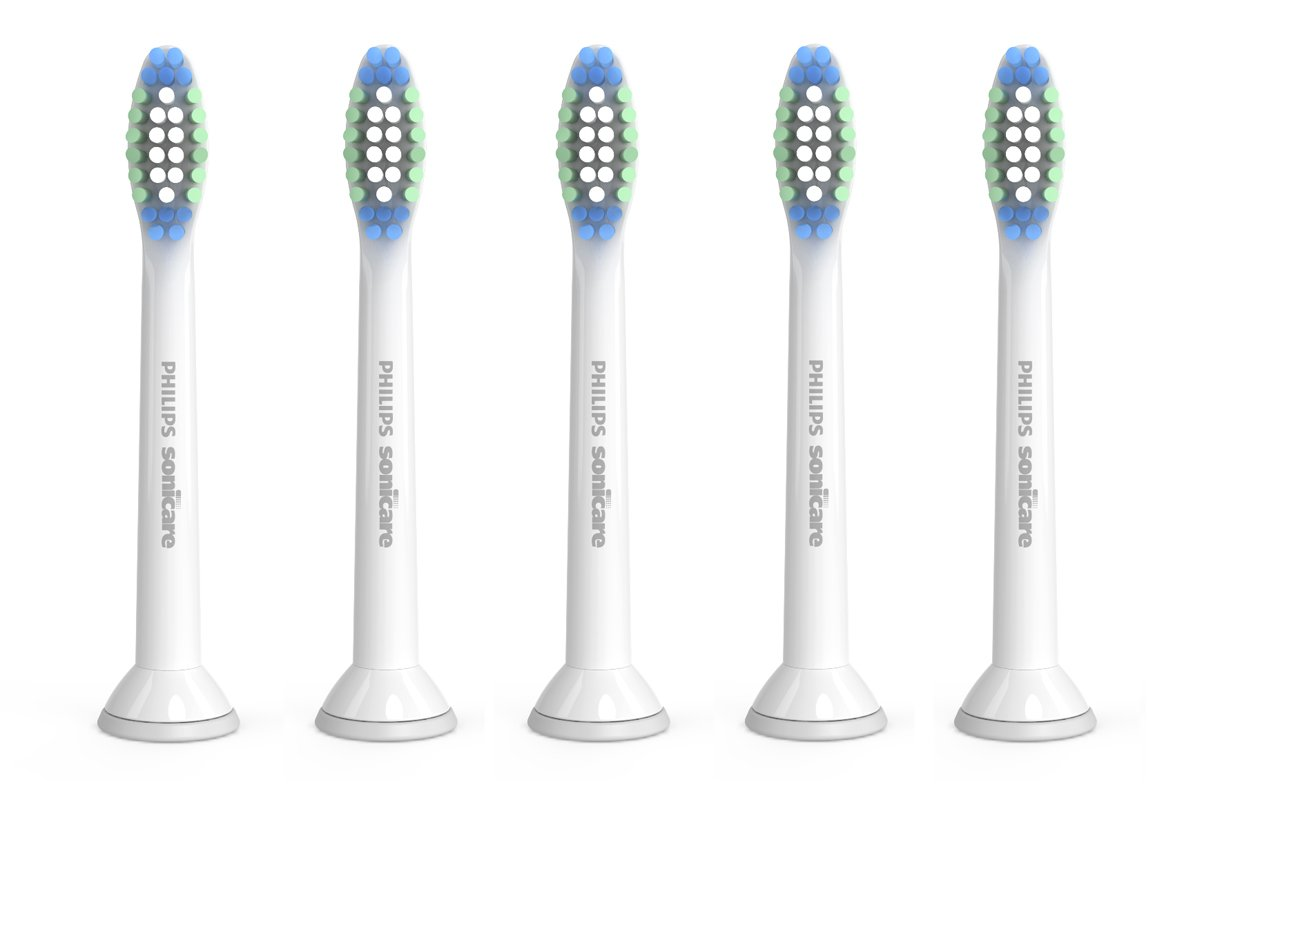 Philips Sonicare Simply Clean replacement toothbrush heads, HX6015/03, 5-count